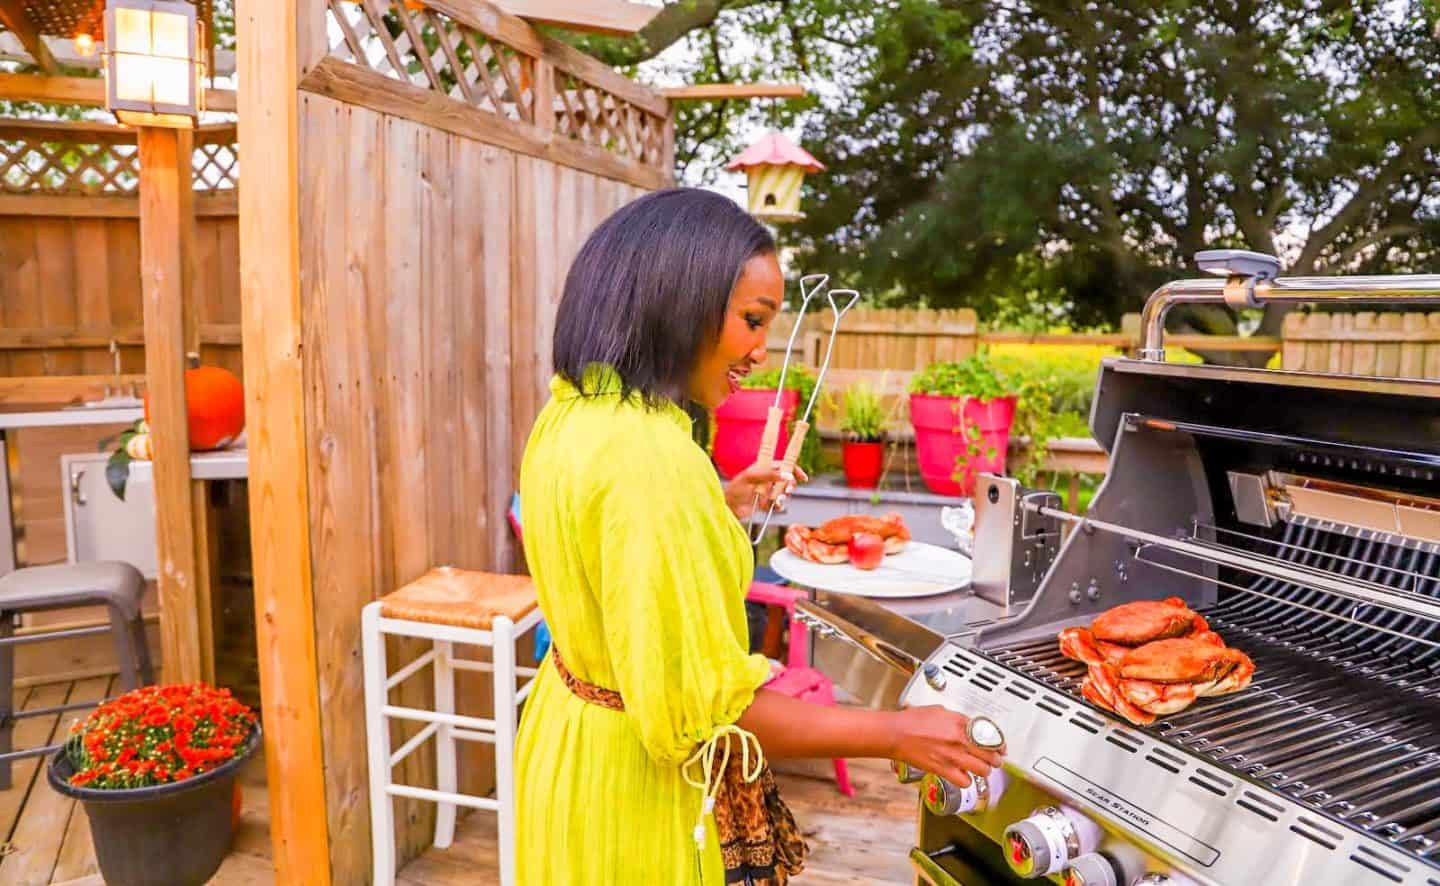 Weber Summit Grill Recipes For The Holidays At Home